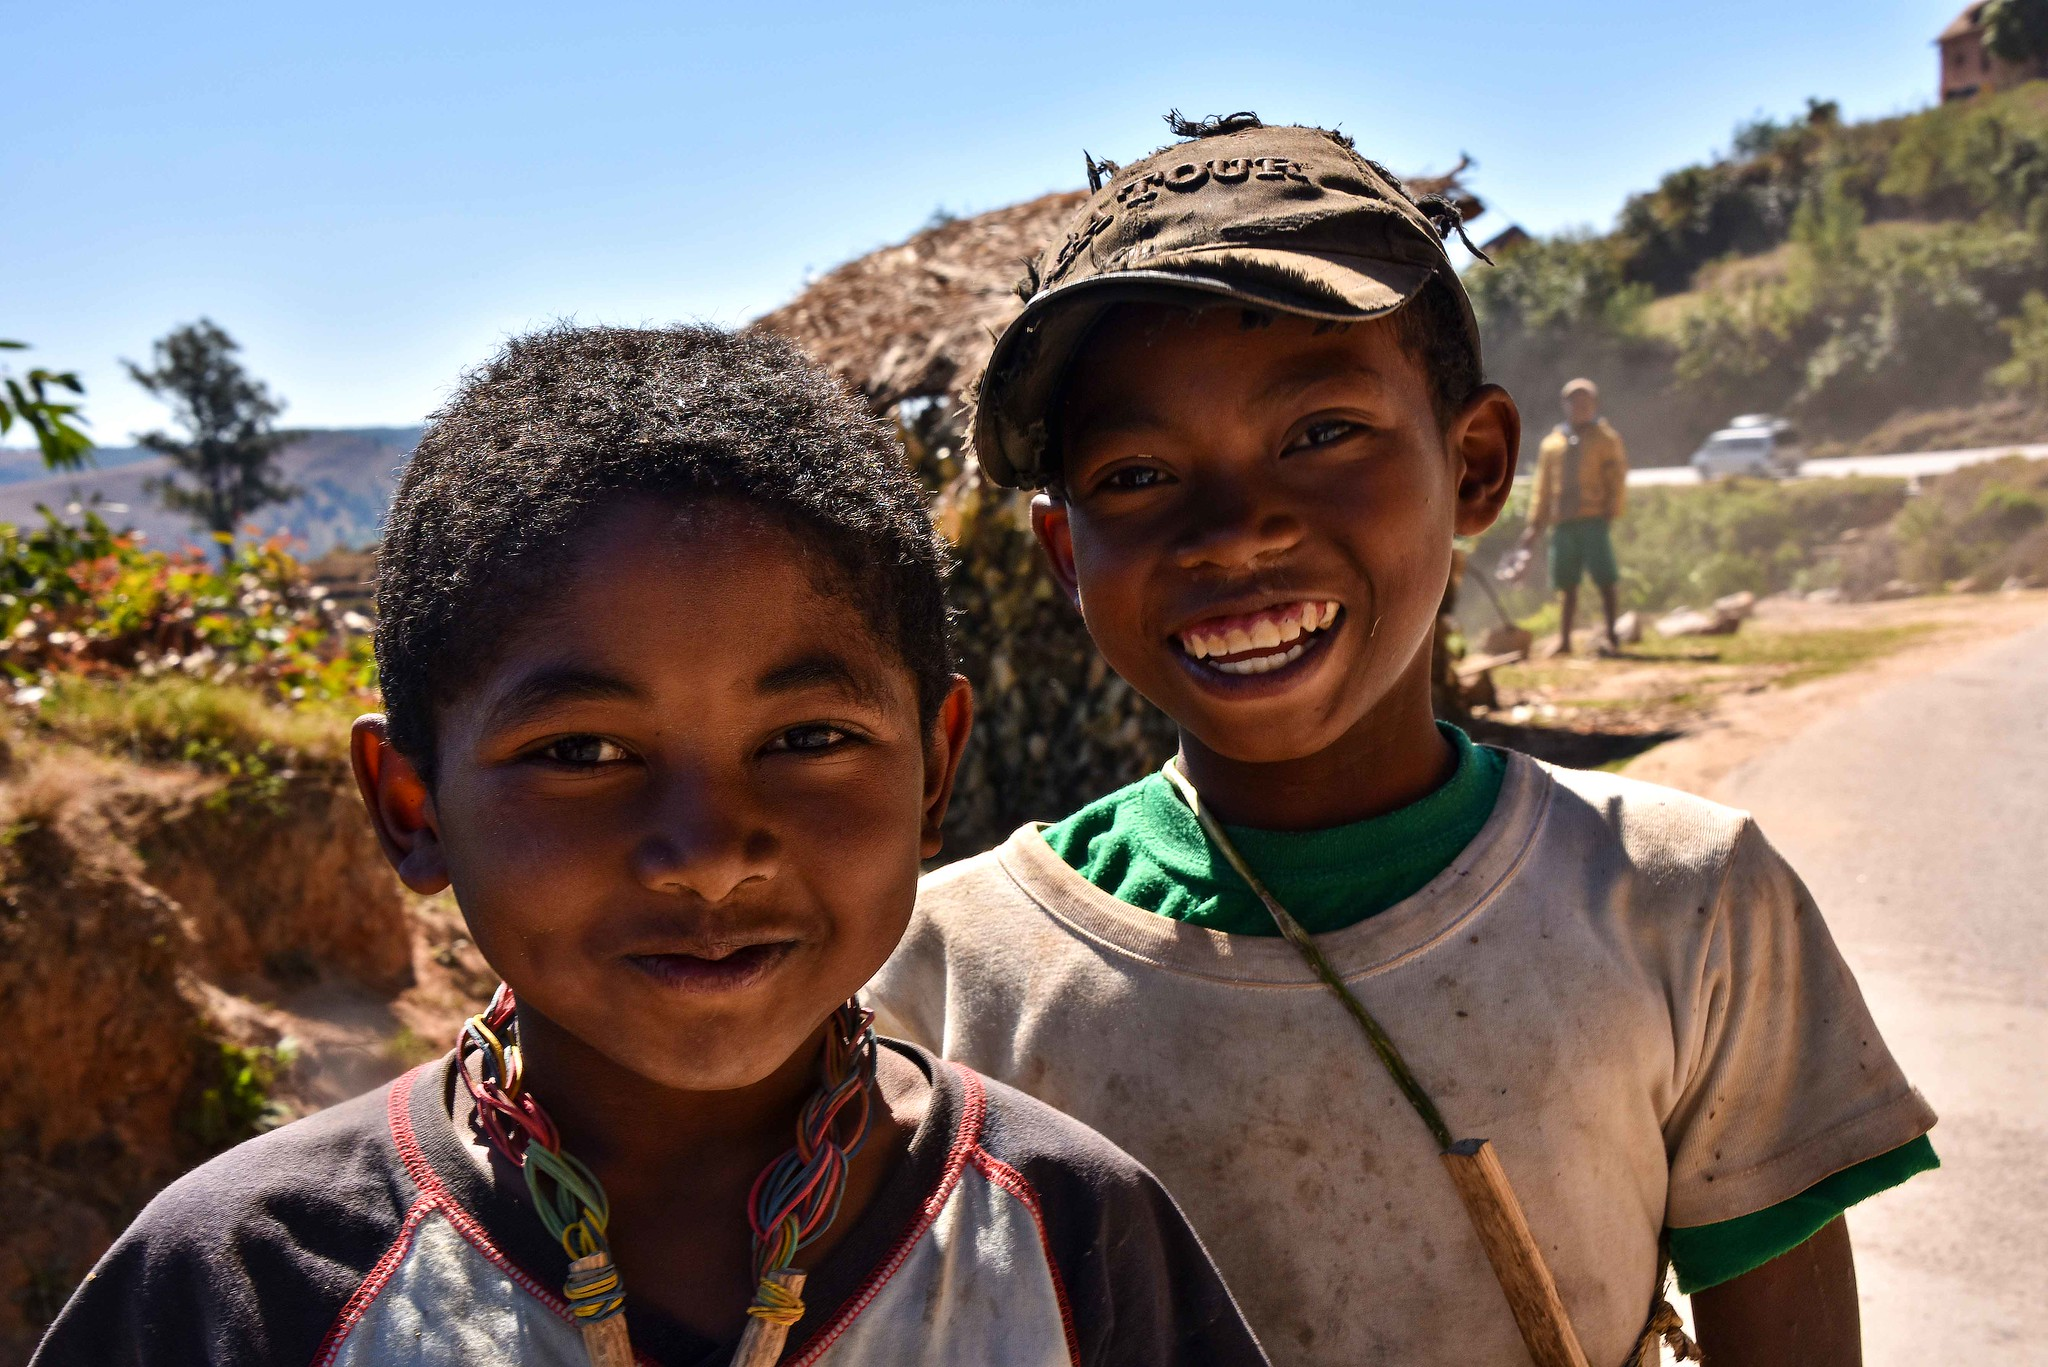 PICTURED:  Two young Malagasy boys smile for the camera. The Malagasy are a genetically diverse people just as the lemurs they share the island with are.  Photo credit Rod Waddington    CC.2.0   .